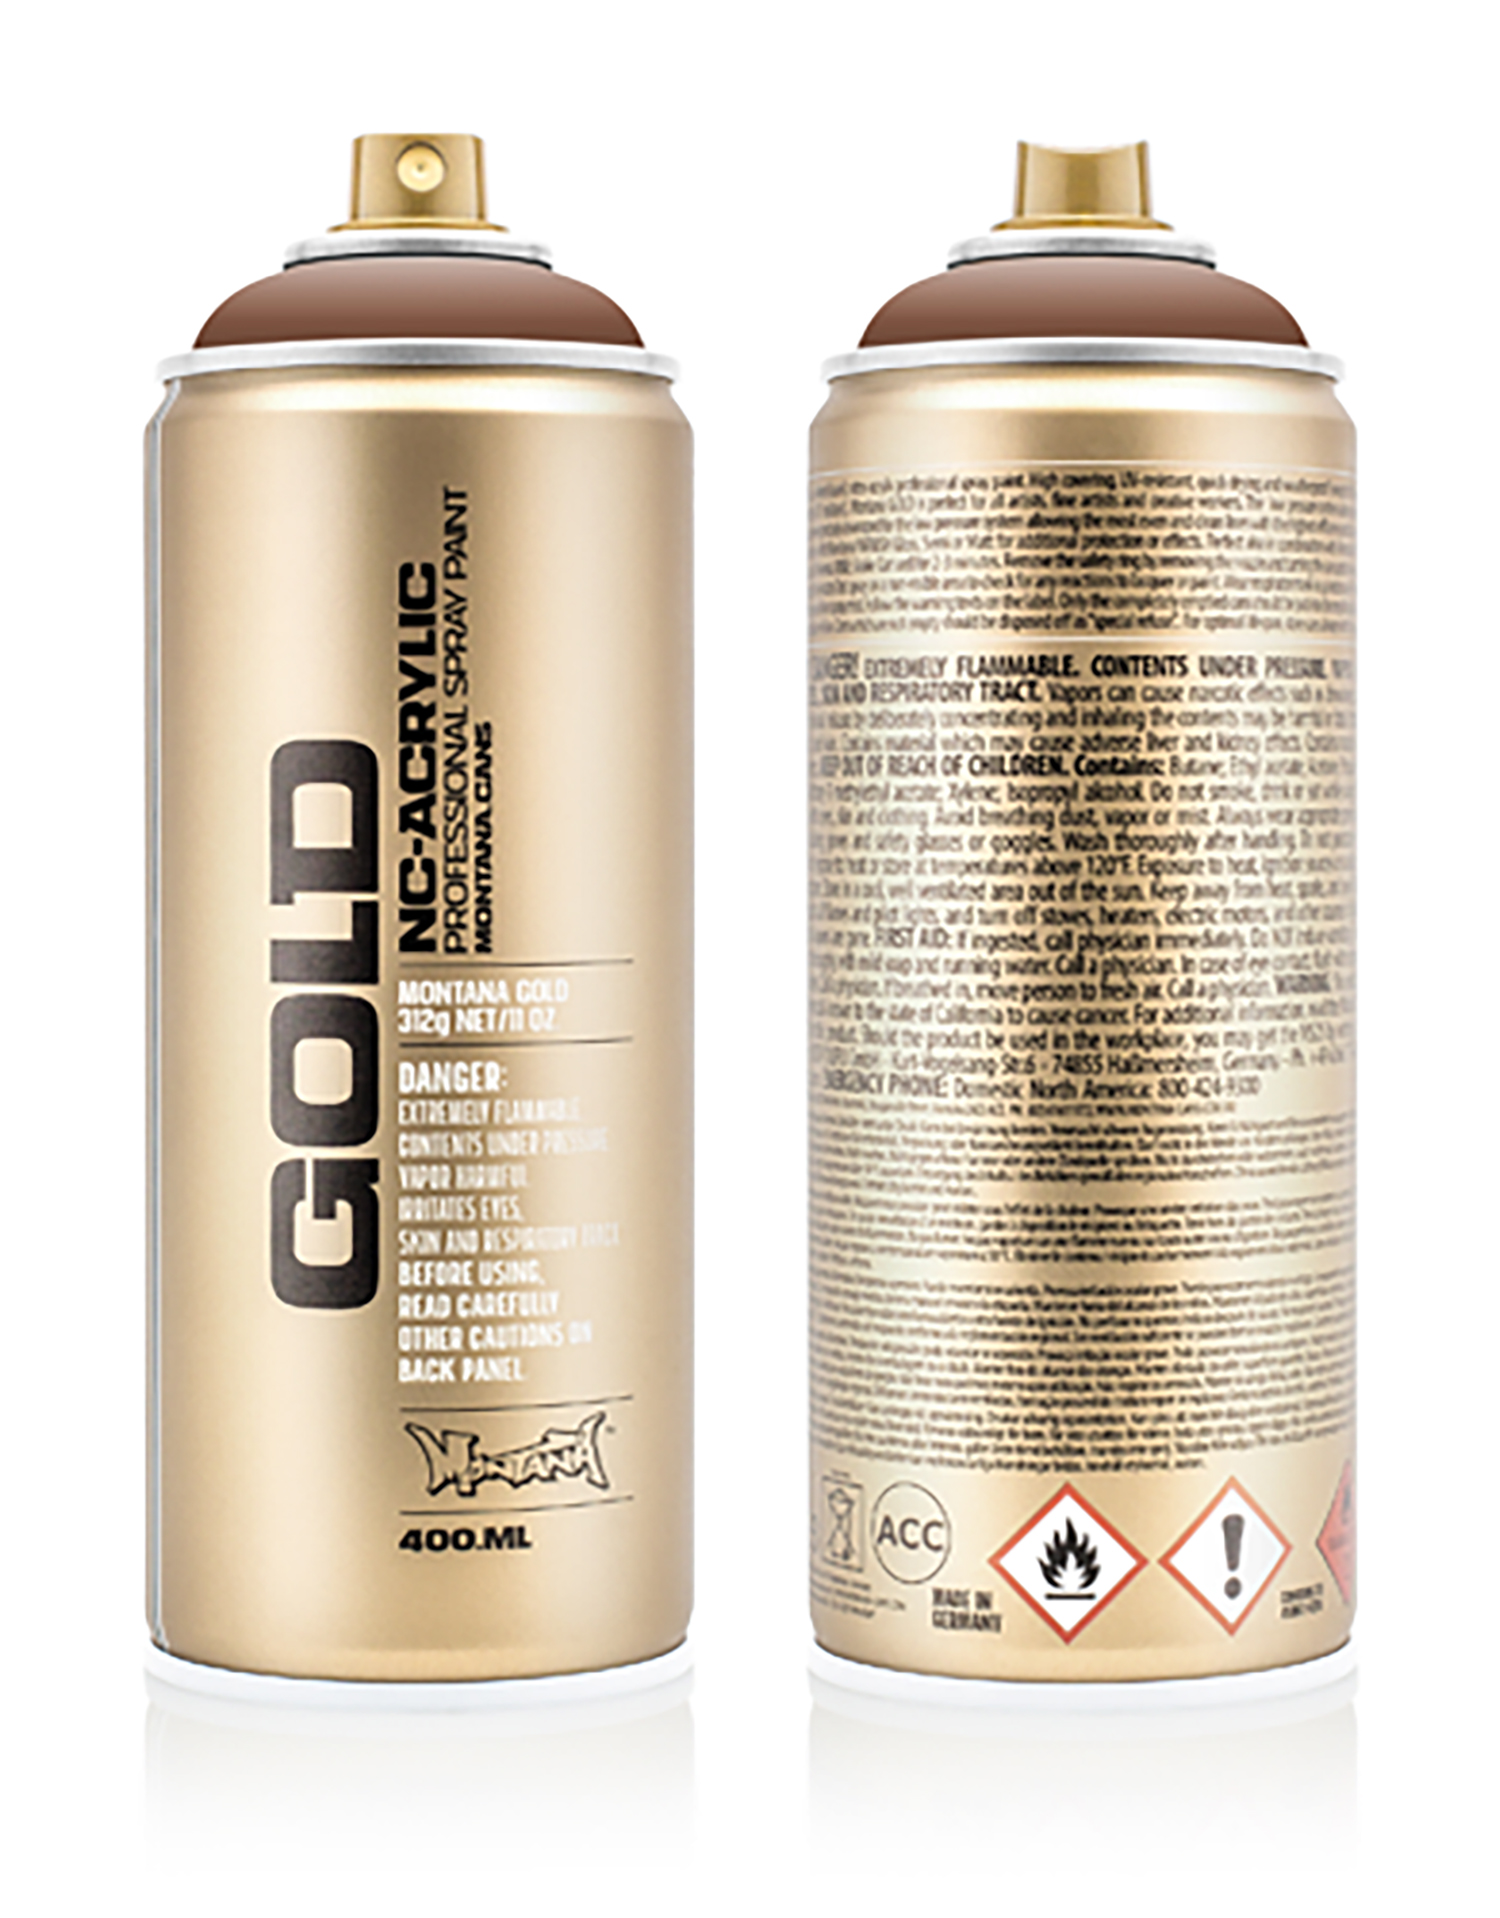 MONTANA-GOLD-SPRAY-400ML-G-1450